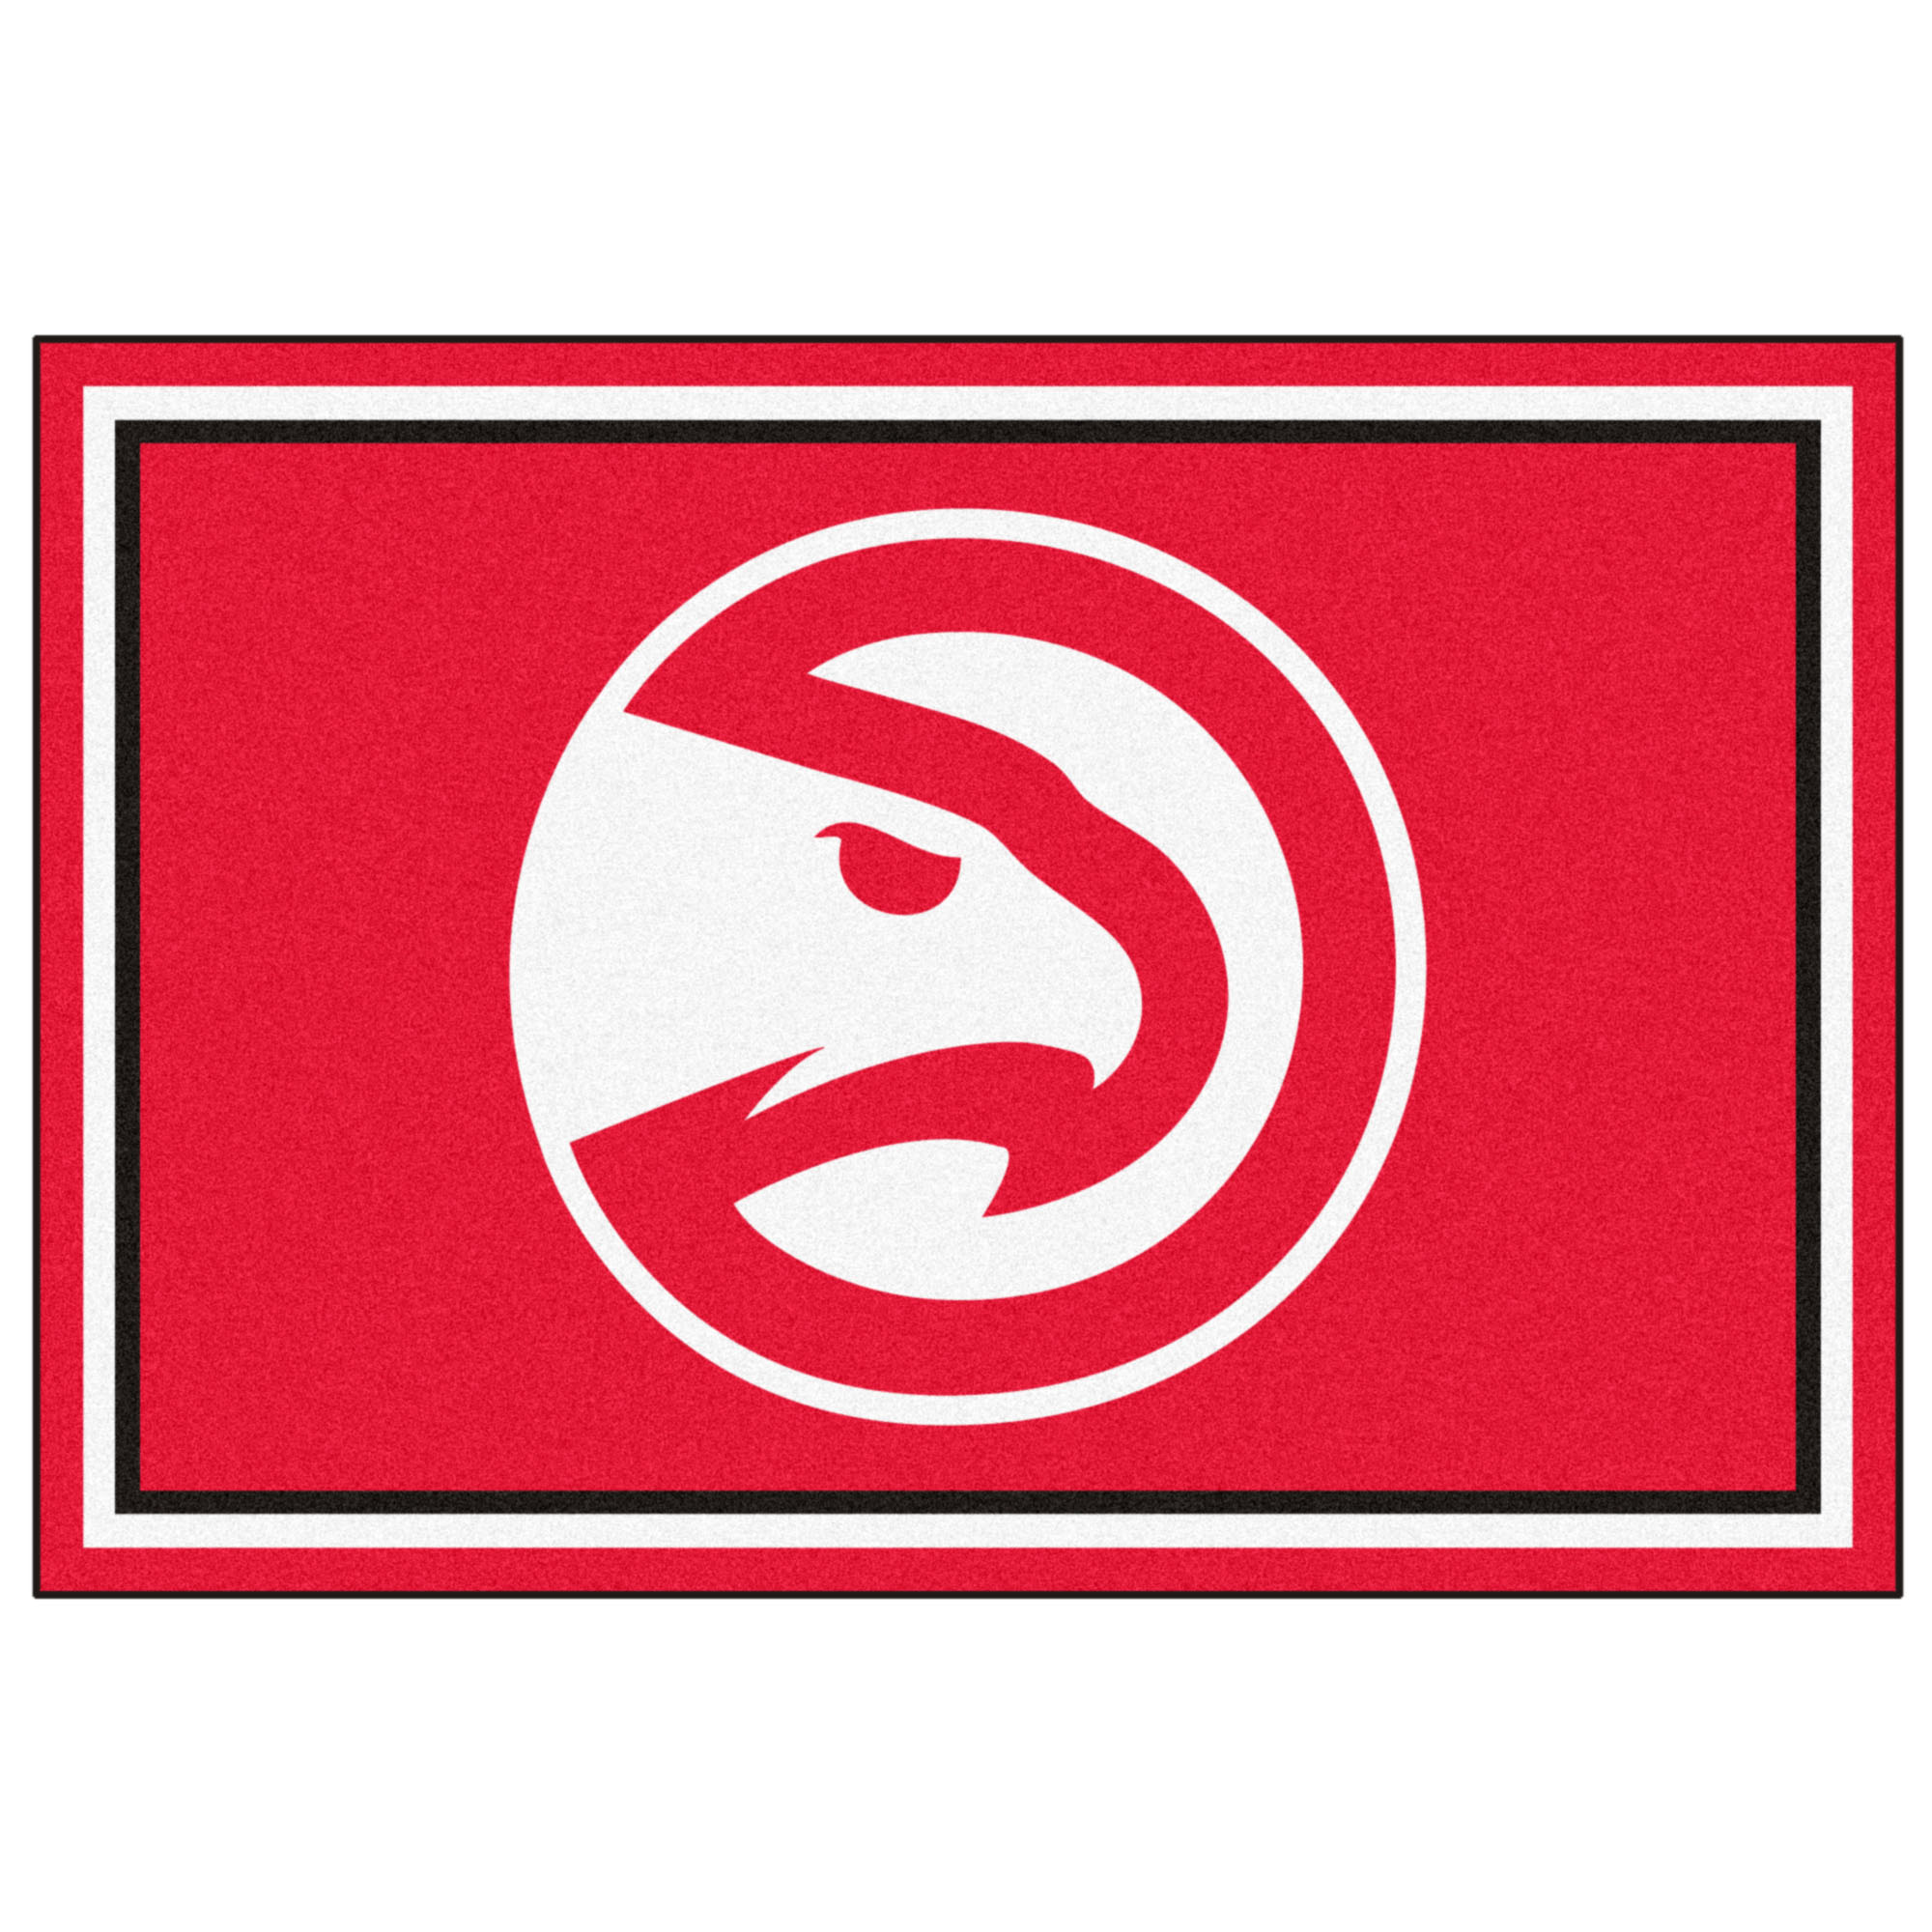 NBA Atlanta Hawks 5 x 8 Foot Plush Non-Skid Area Rug